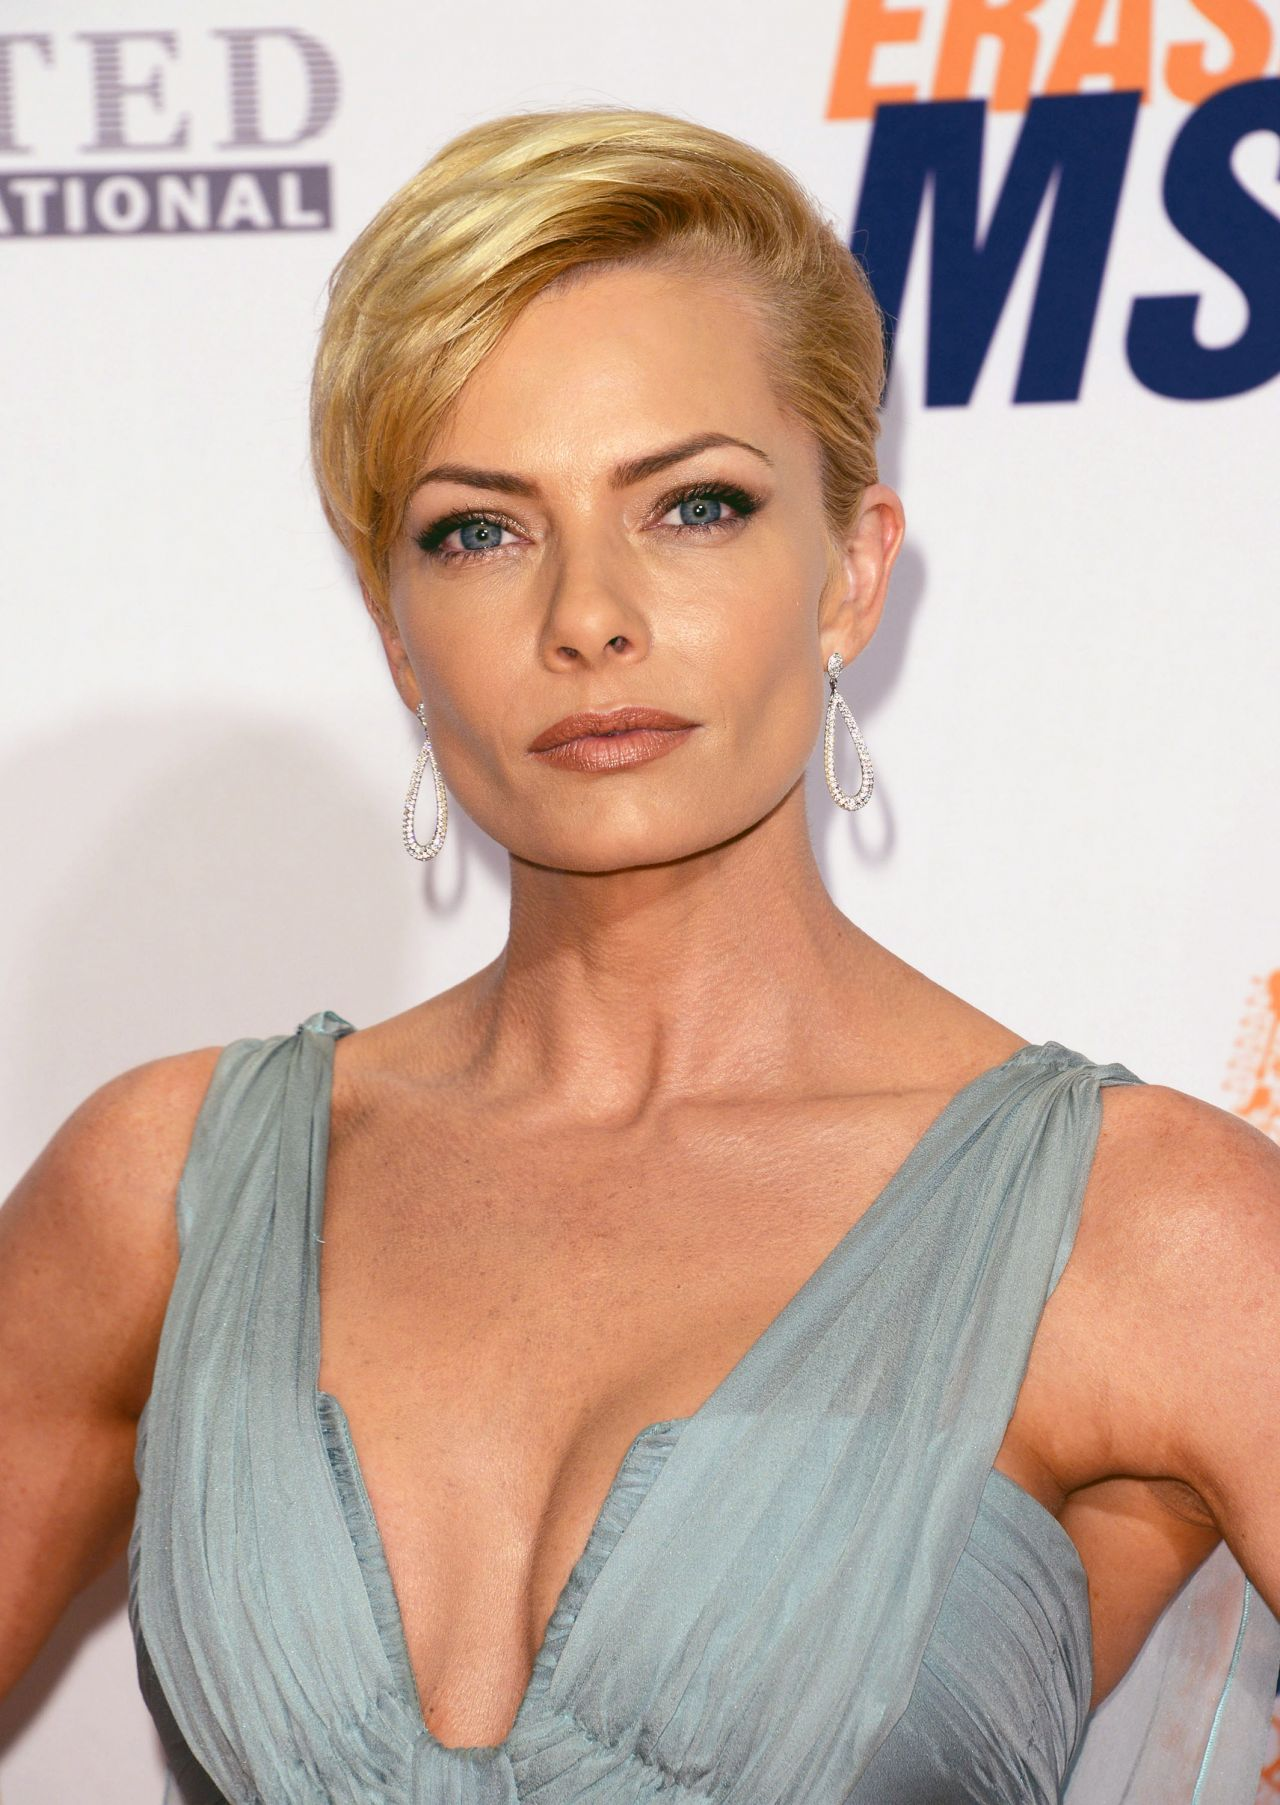 Nude Pics Of Jaime Pressly 45